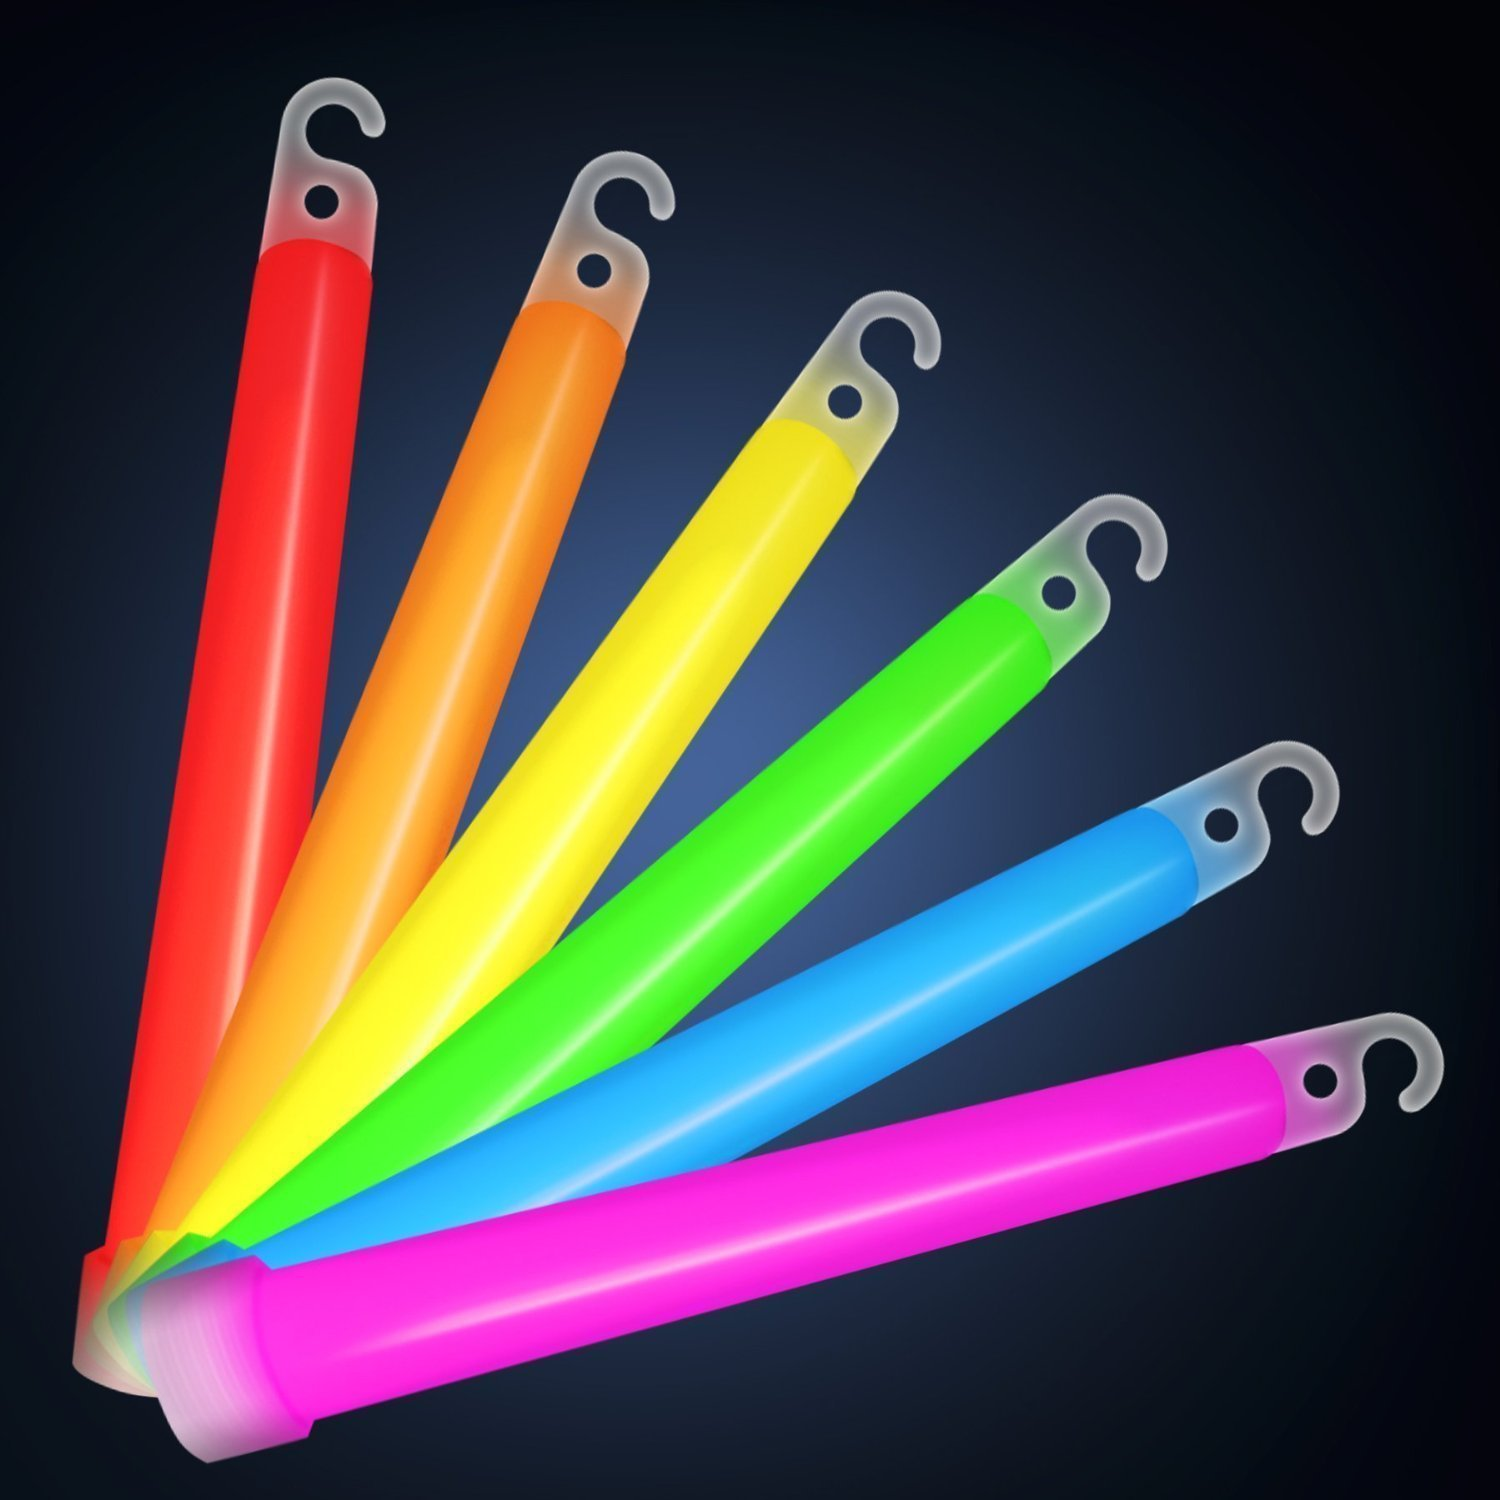 ideas so to dark are the these love ways children activities have stick fun much light sticks in glow with